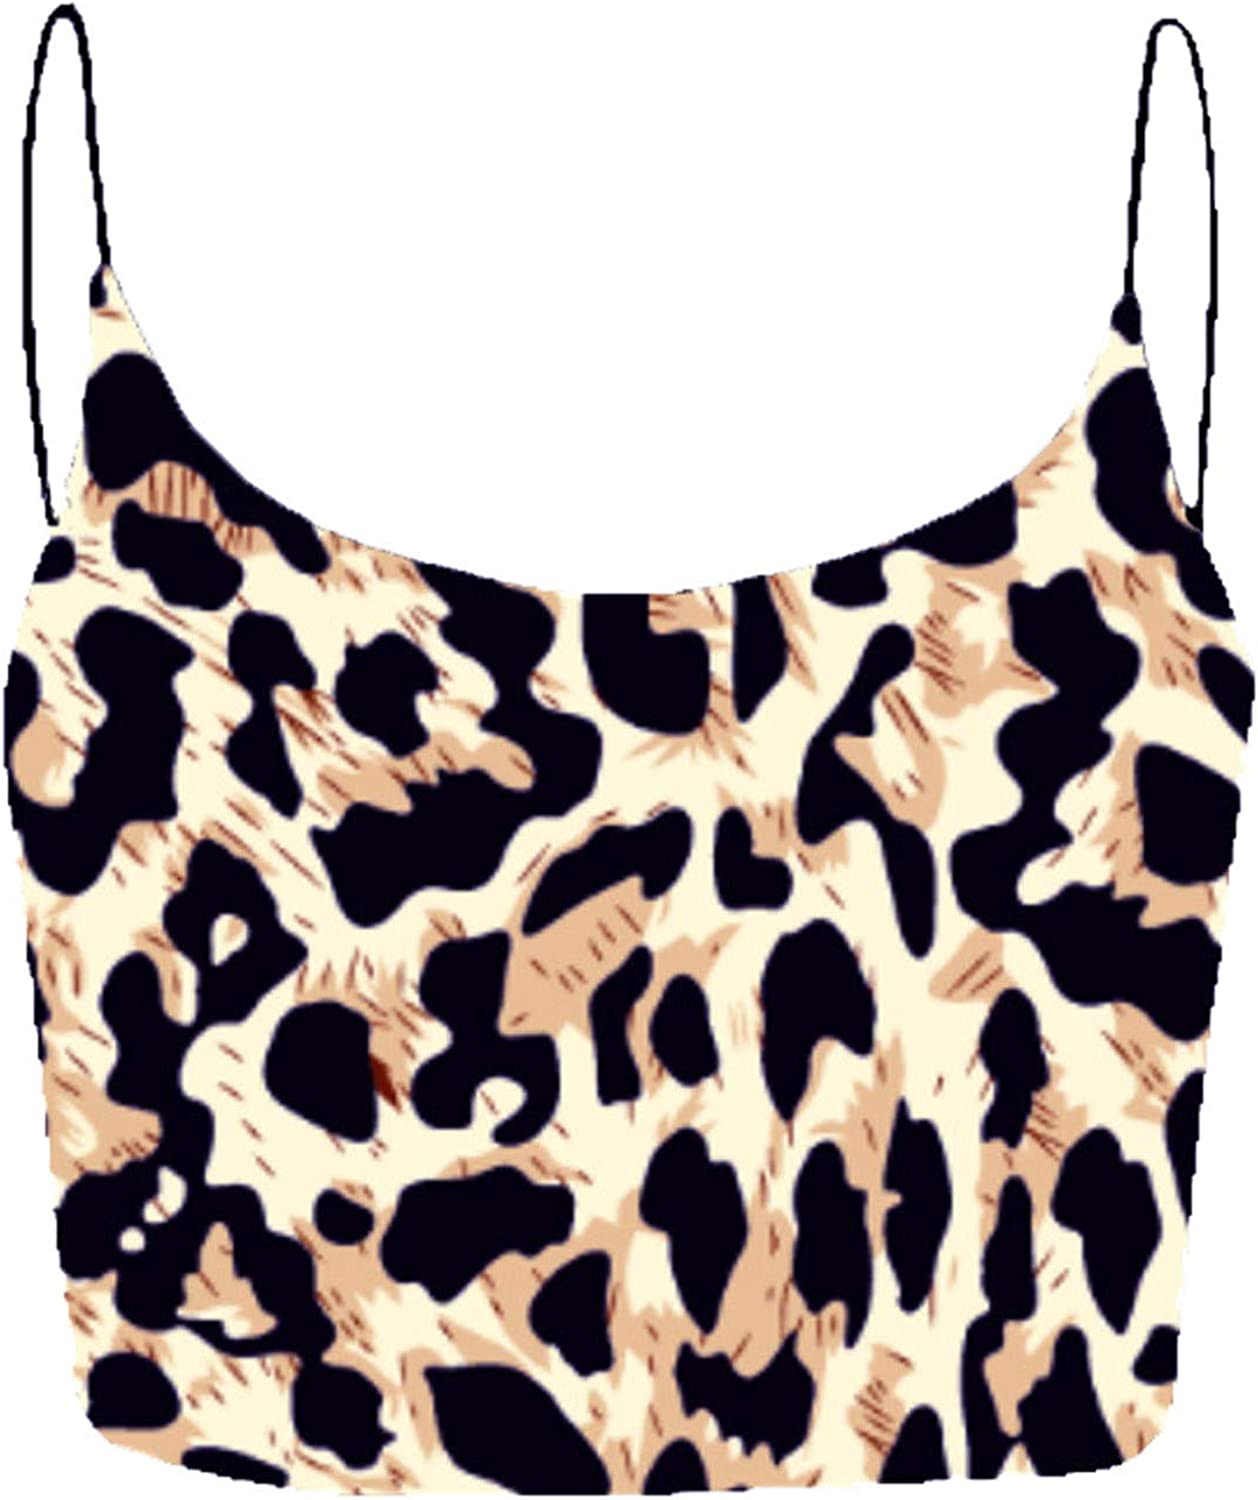 Women's Spaghetti Strap Tops Camisole Tank Crop Tops, Sleeveless Yoga Sports Sexy Cami,Printing Leopard Floral Vest